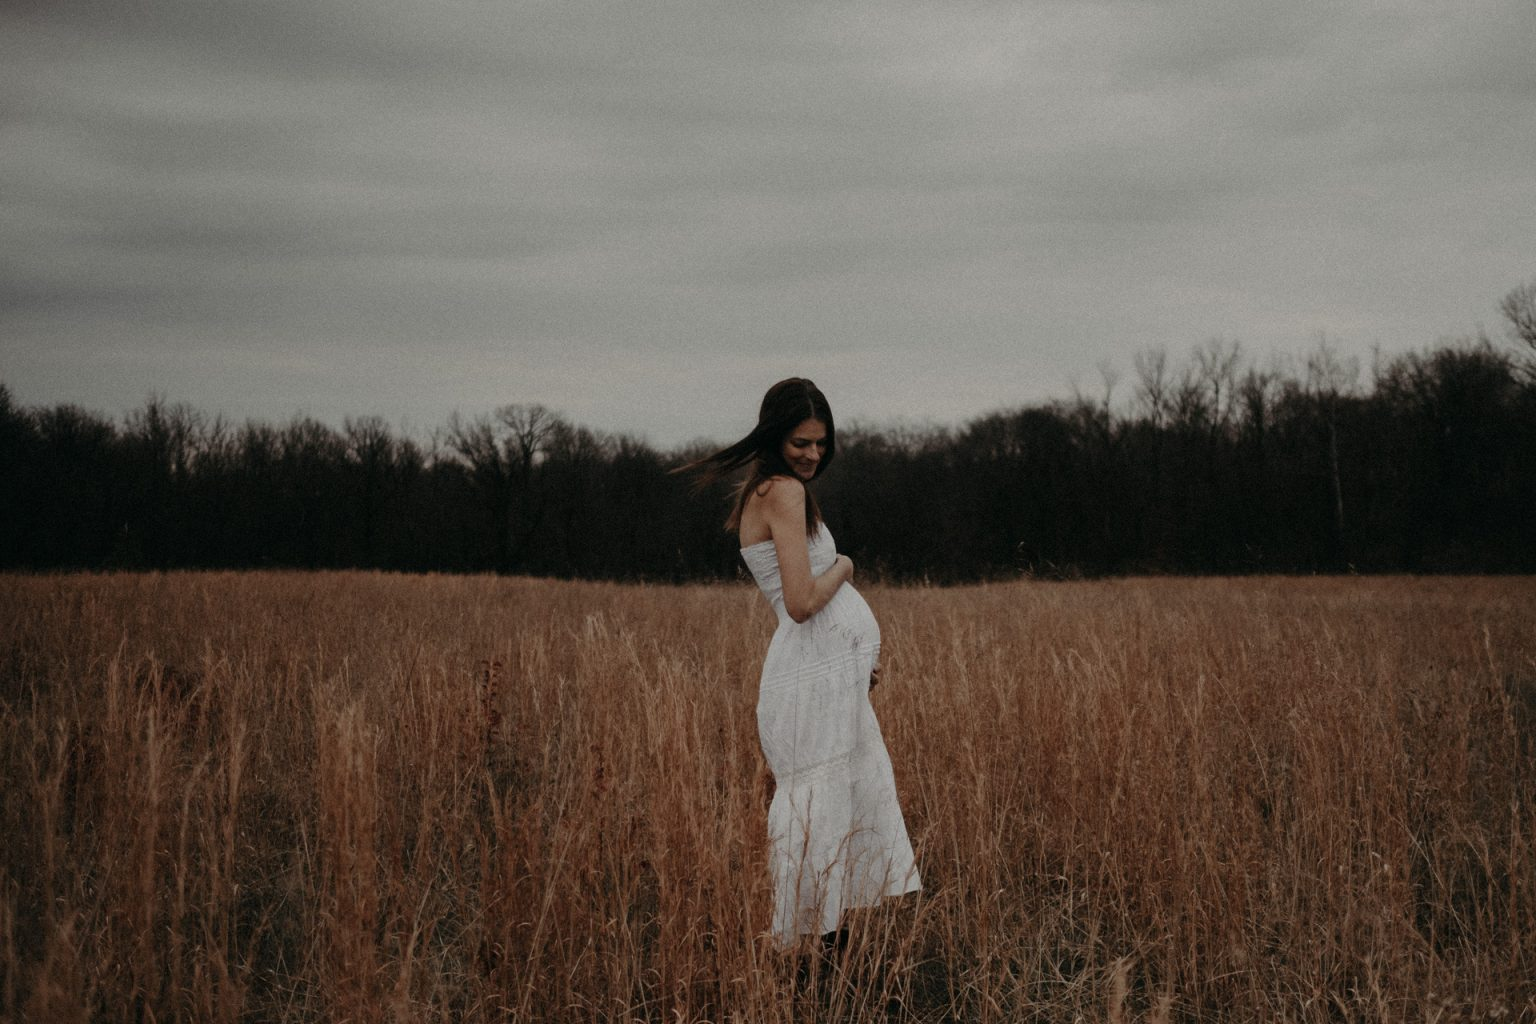 pregnant woman standing in field illinois